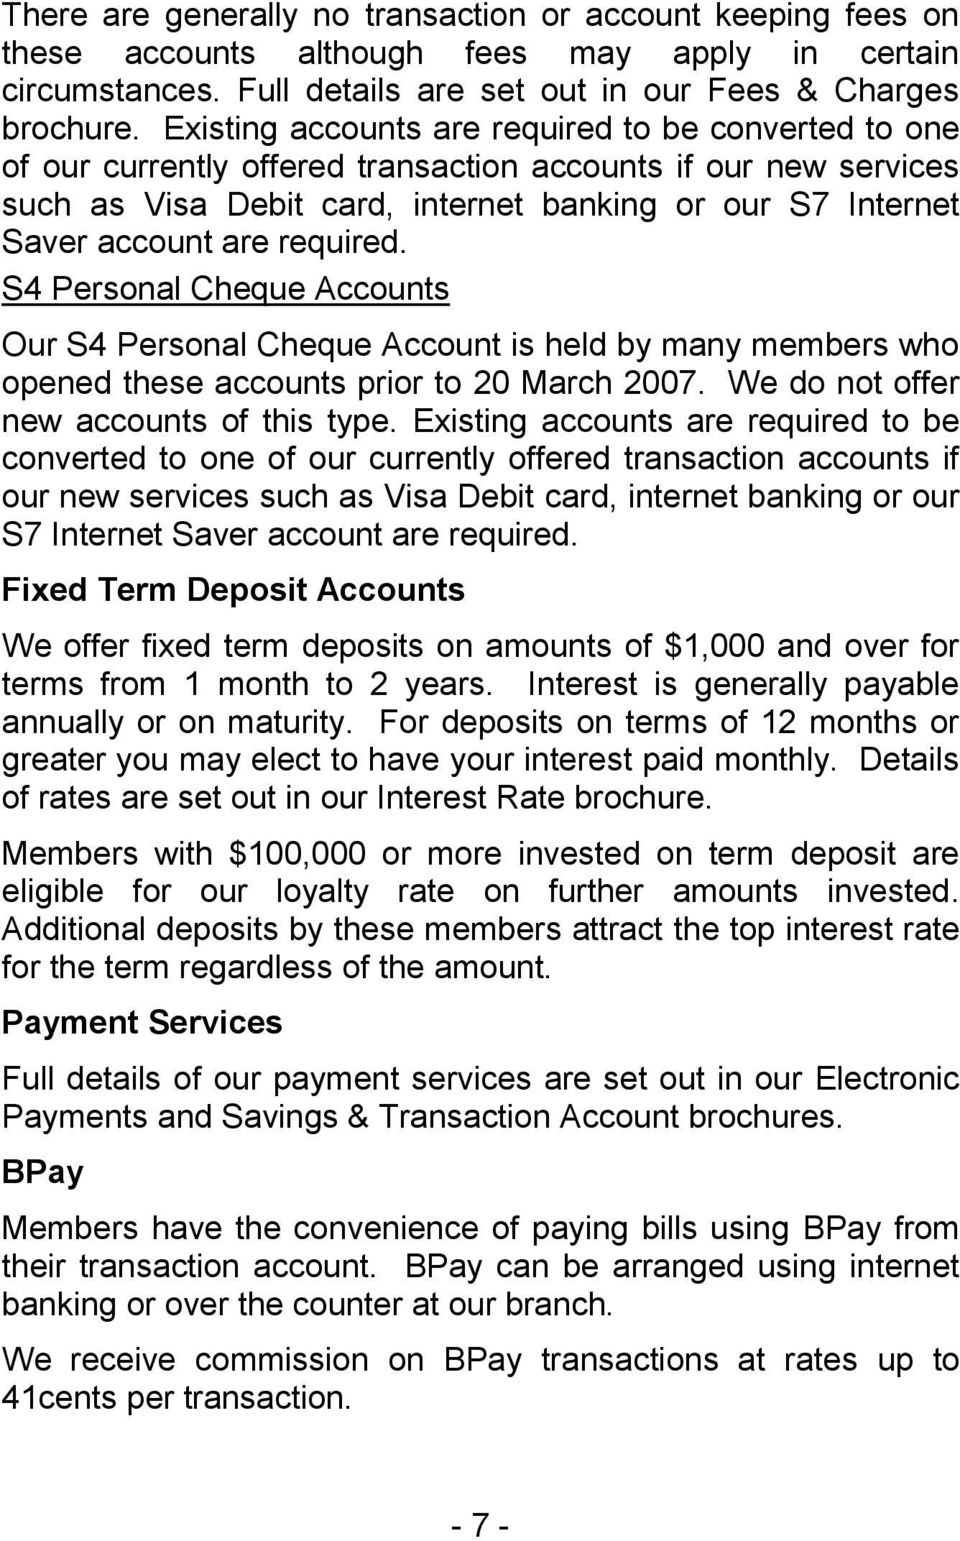 required. S4 Personal Cheque Accounts Our S4 Personal Cheque Account is held by many members who opened these accounts prior to 20 March 2007. We do not offer new accounts of this type.  required.